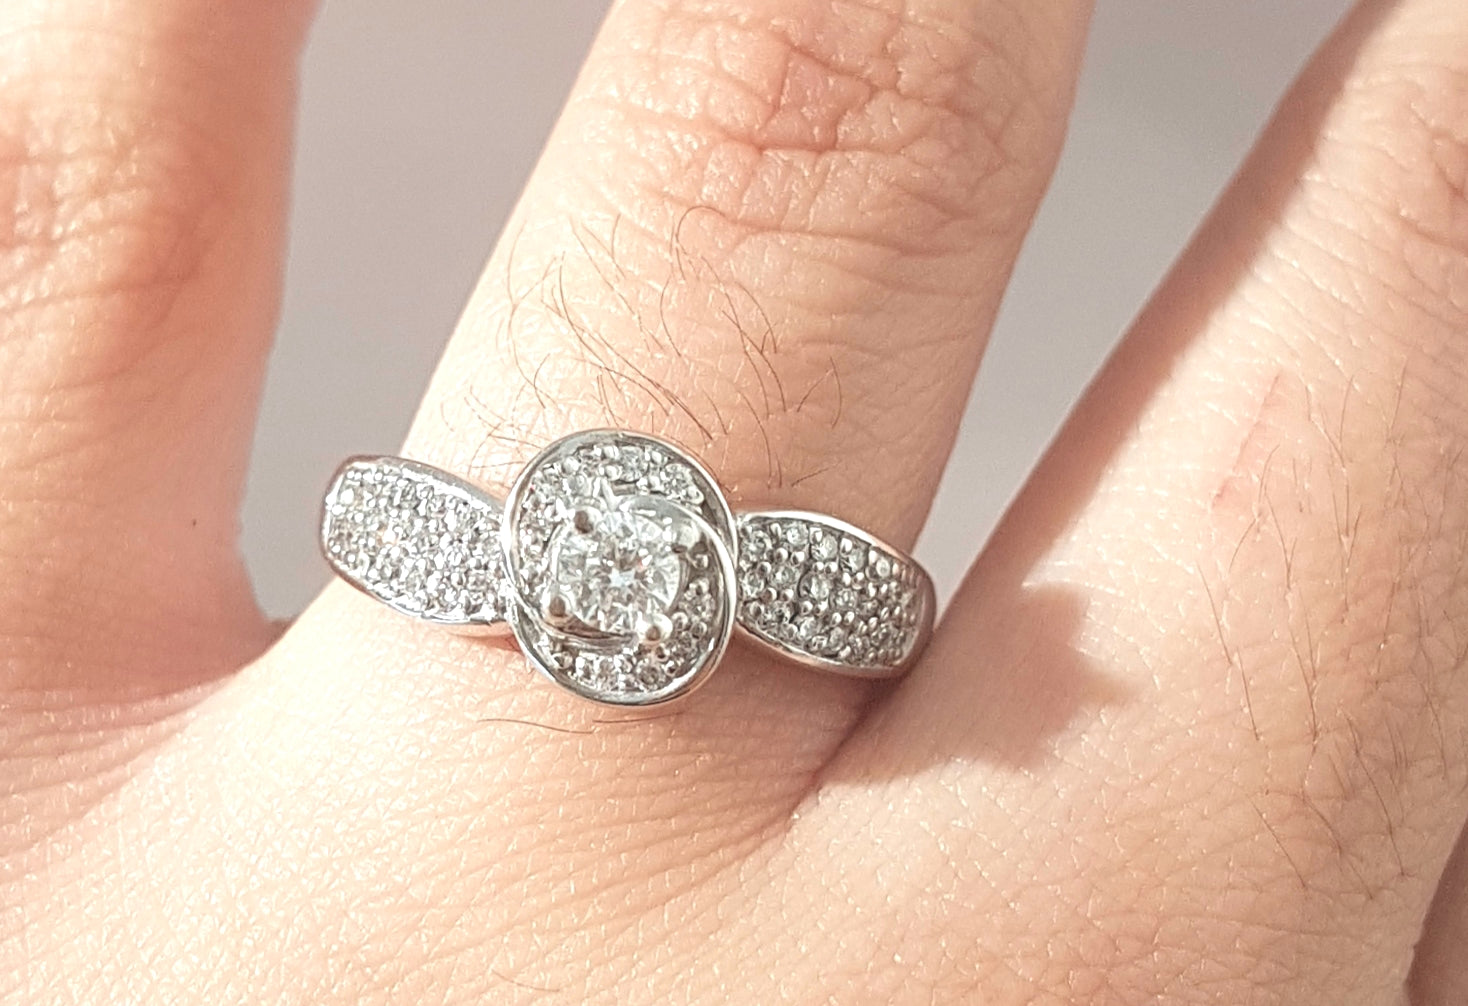 0.500ct Round Cut Diamond [Flower Design] Ring set in 14kt White Gold